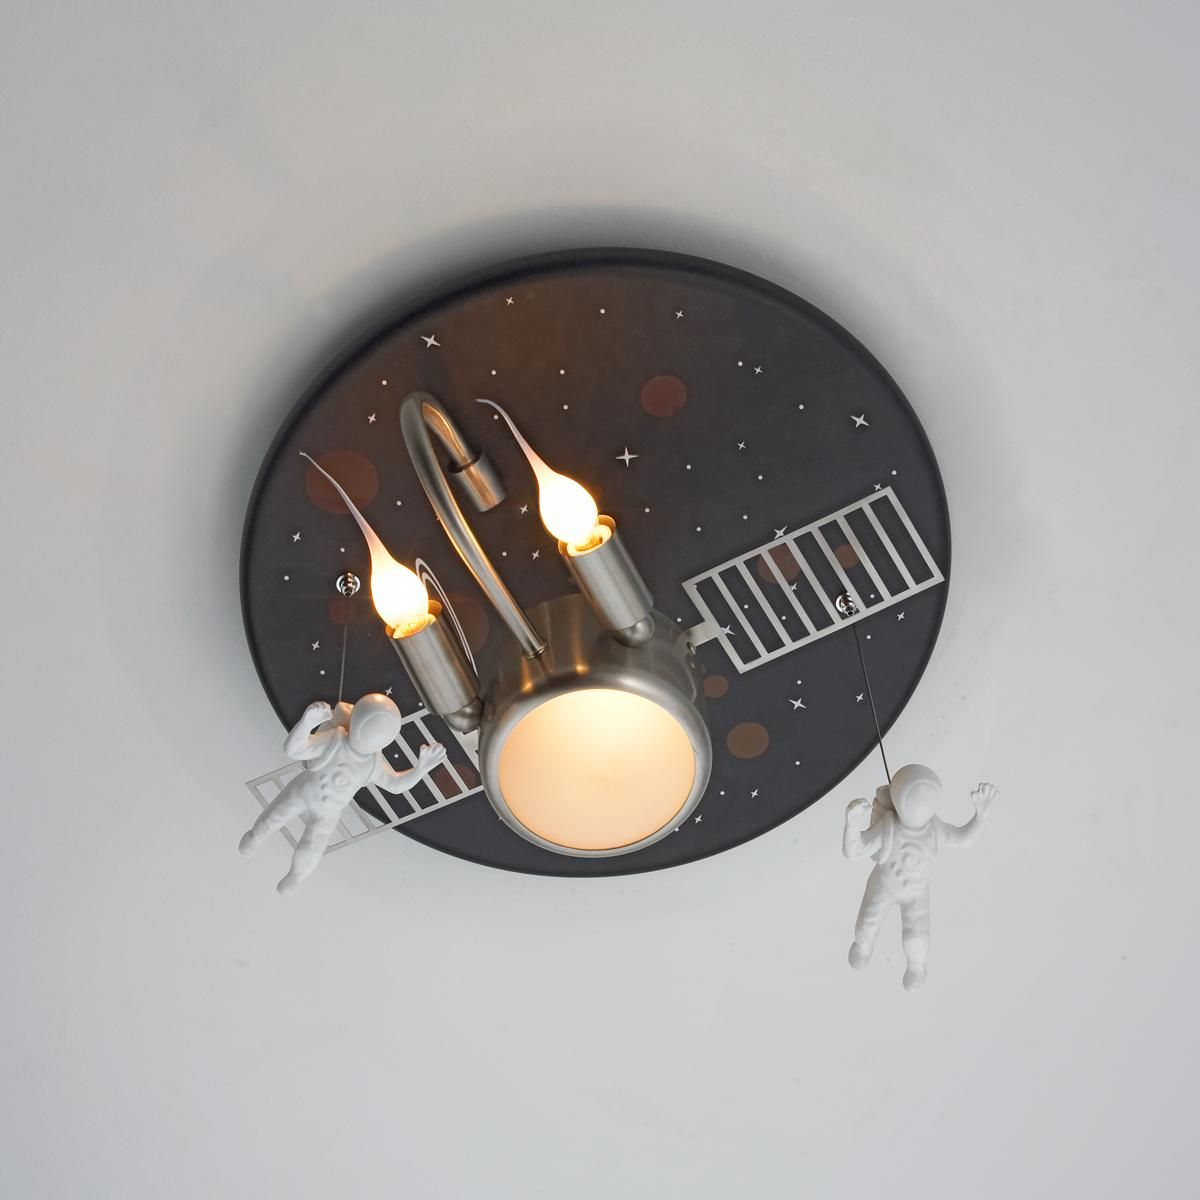 Astronaut ceiling light childrens lighting rugs pinterest astronaut ceiling light childrens lightinglighting arubaitofo Gallery